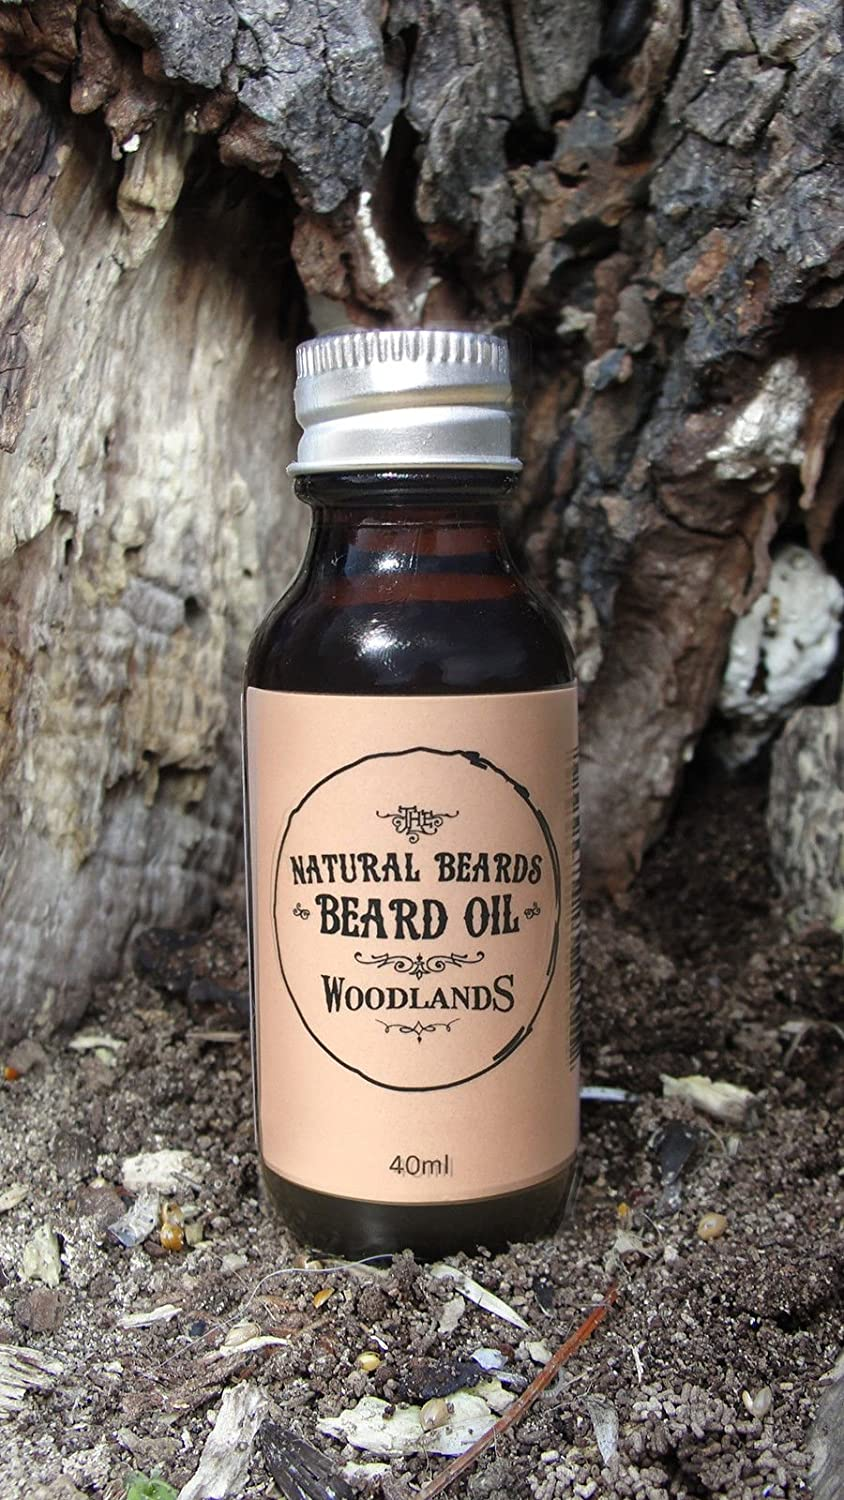 Natural Beards 40ml Premium Beard Oil. A Light Woody Eucalyptus Scented Beard Oil for Men that Softens and Deep Conditions your Beard.